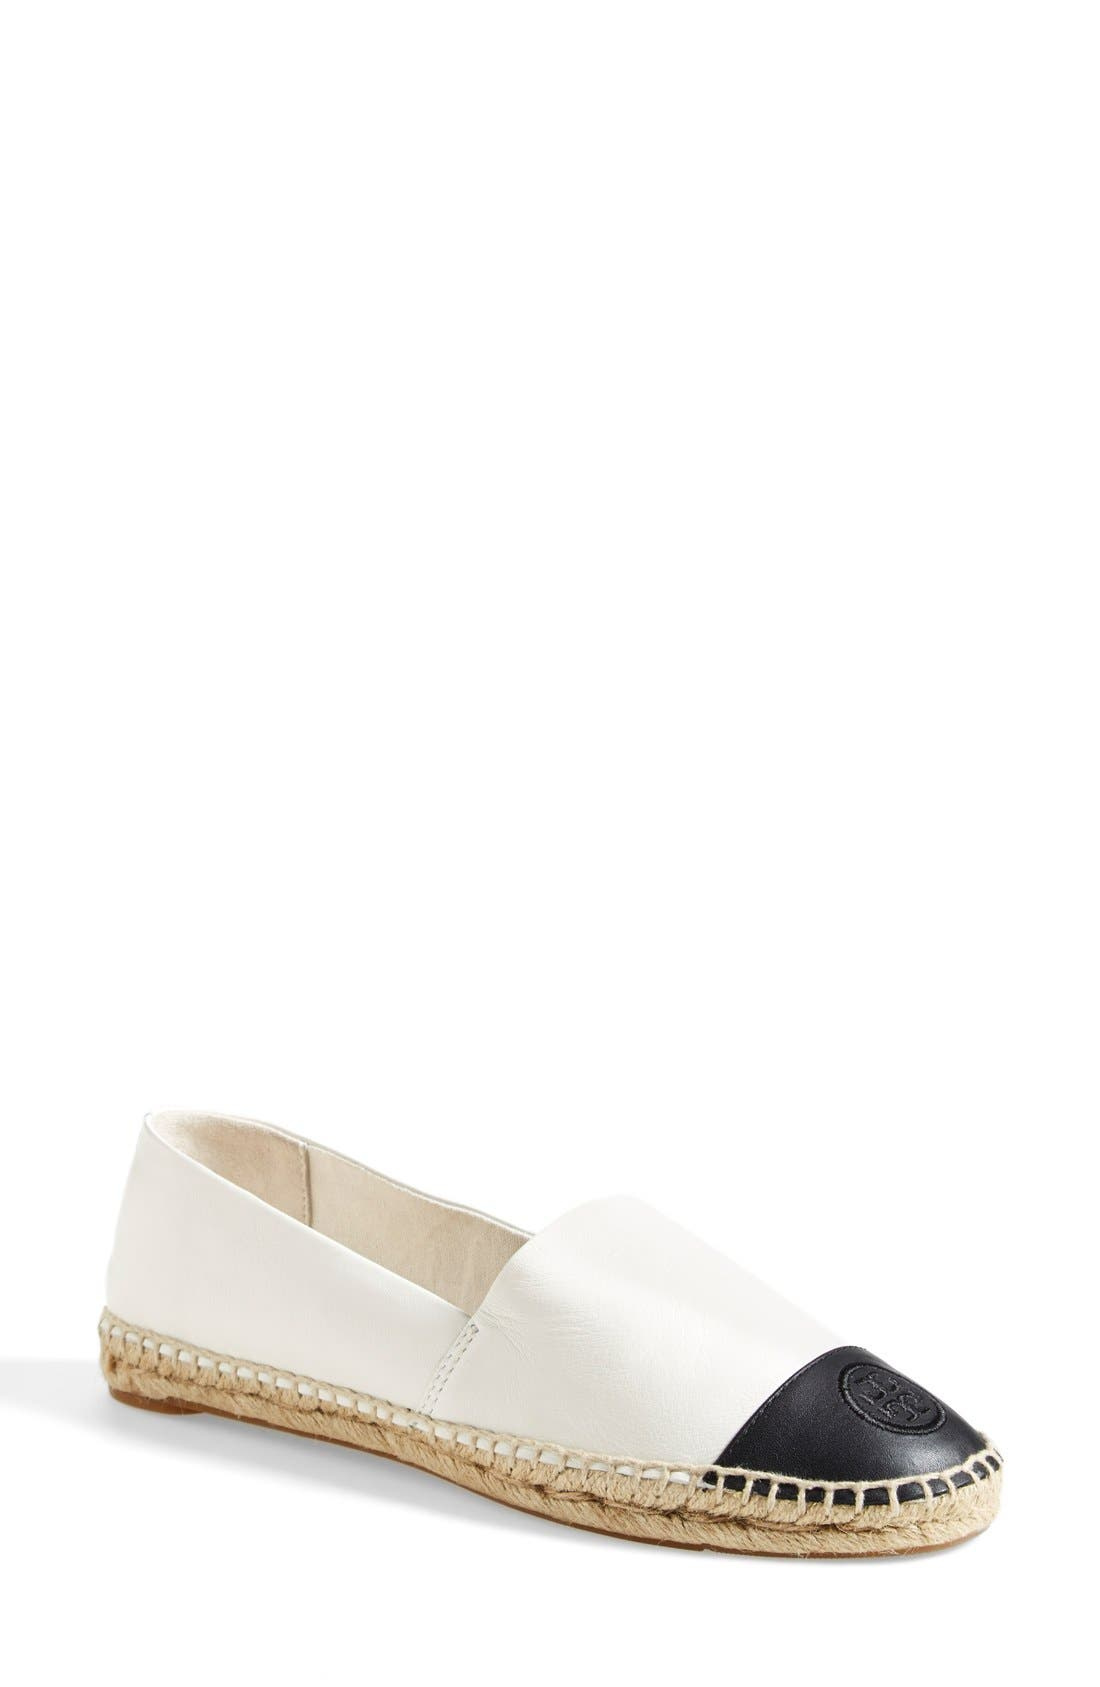 TORY BURCH Colorblock Espadrille Flat, Main, color, IVORY/ BLACK